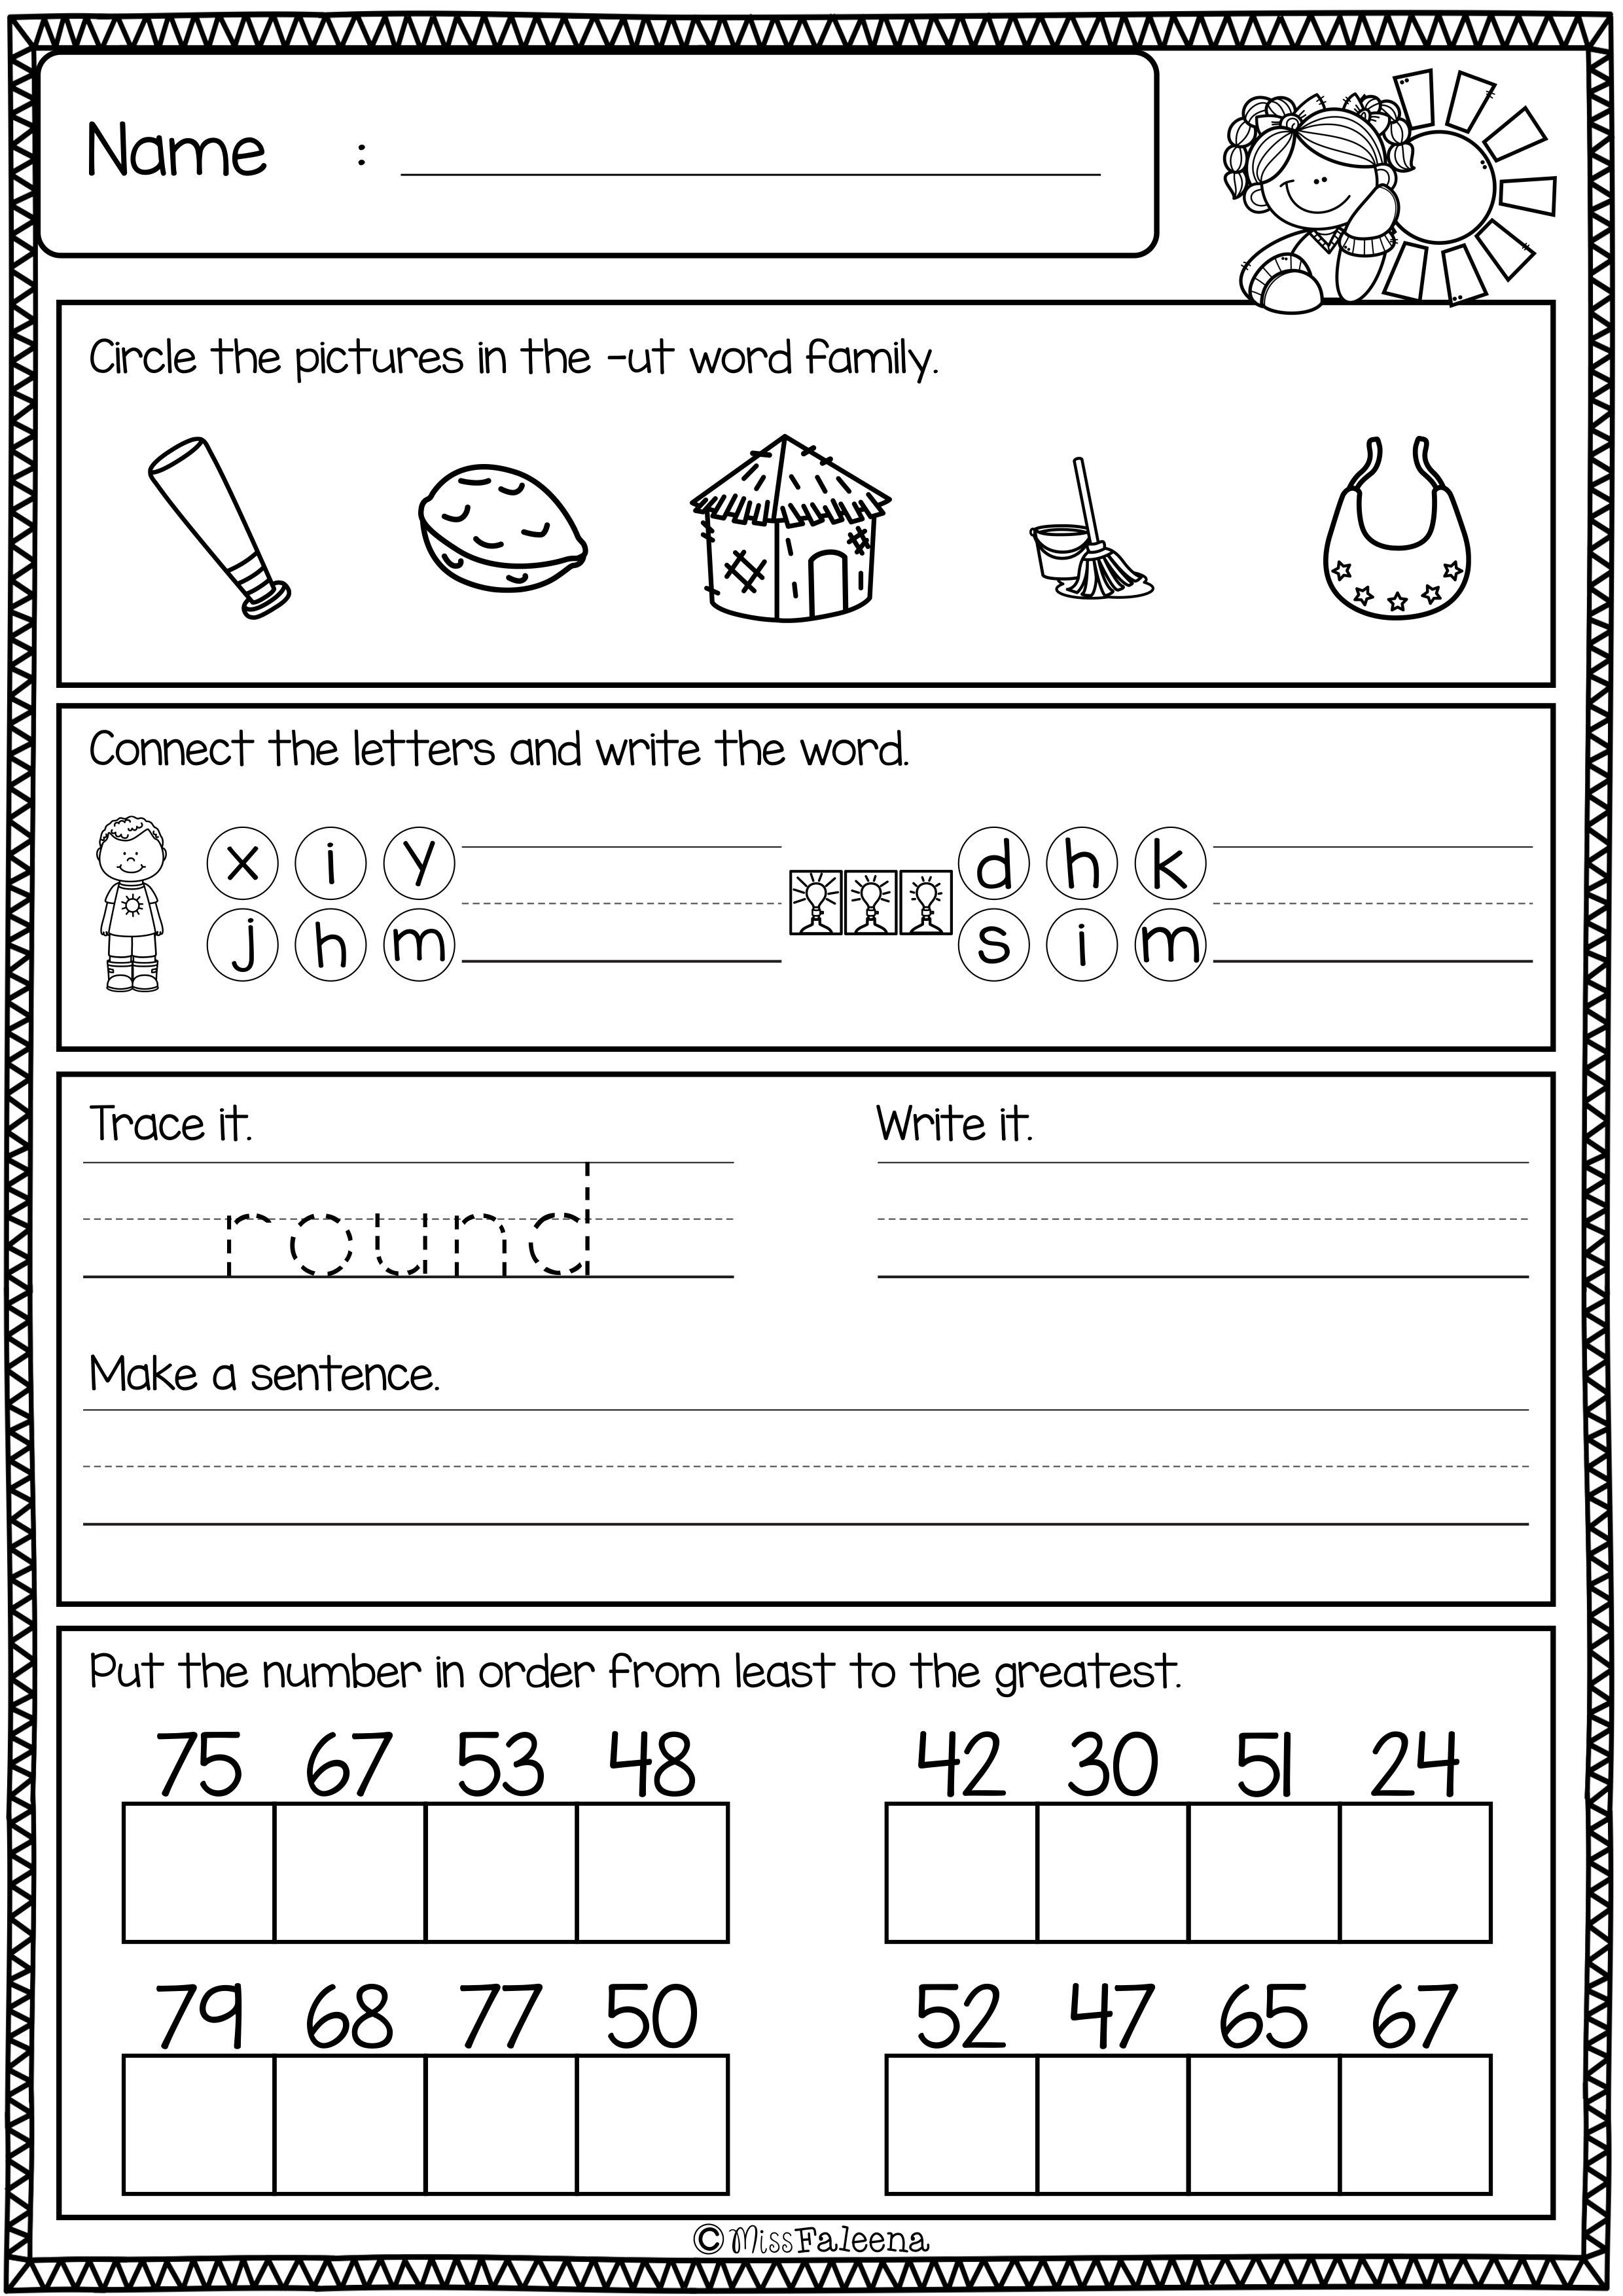 small resolution of First Grade Morning Work (Set 2) (With images)   Kids math worksheets